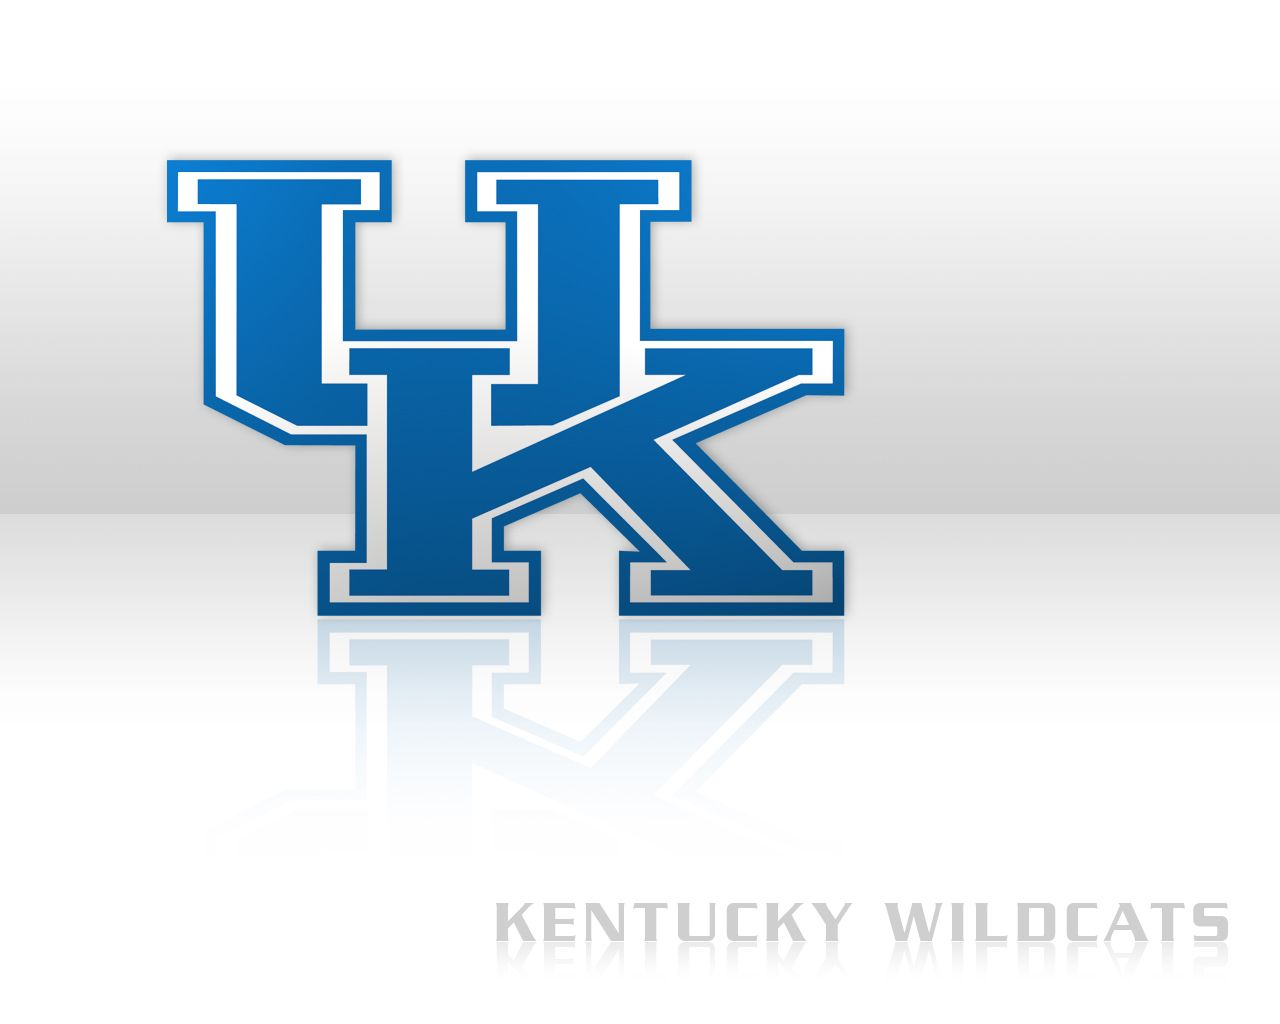 university of kentucky chrome themes, ios wallpapers blogs for 800